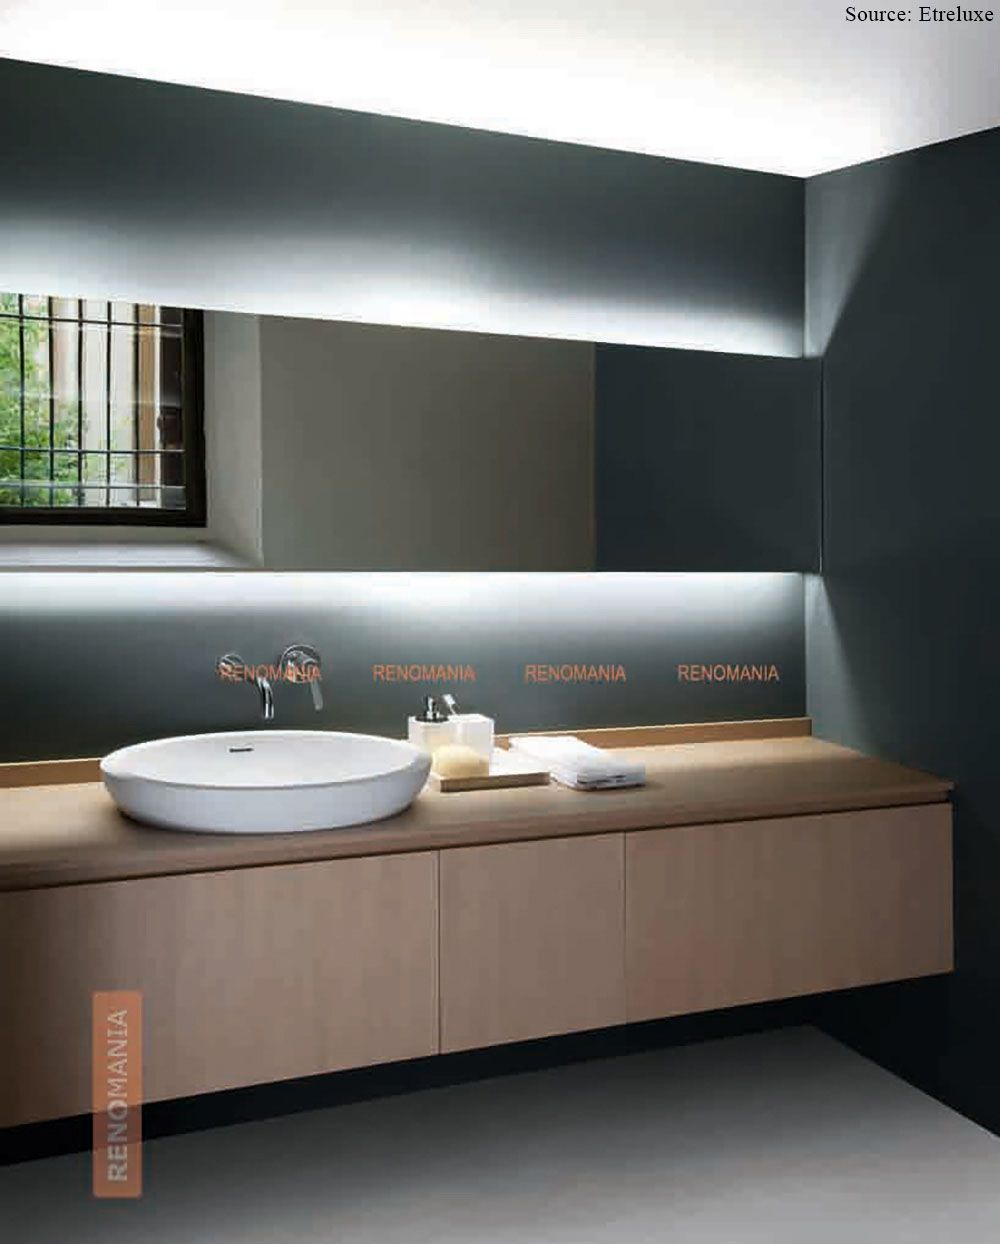 Floating Glass Divider In Bathroom Google Search Bathroom Style